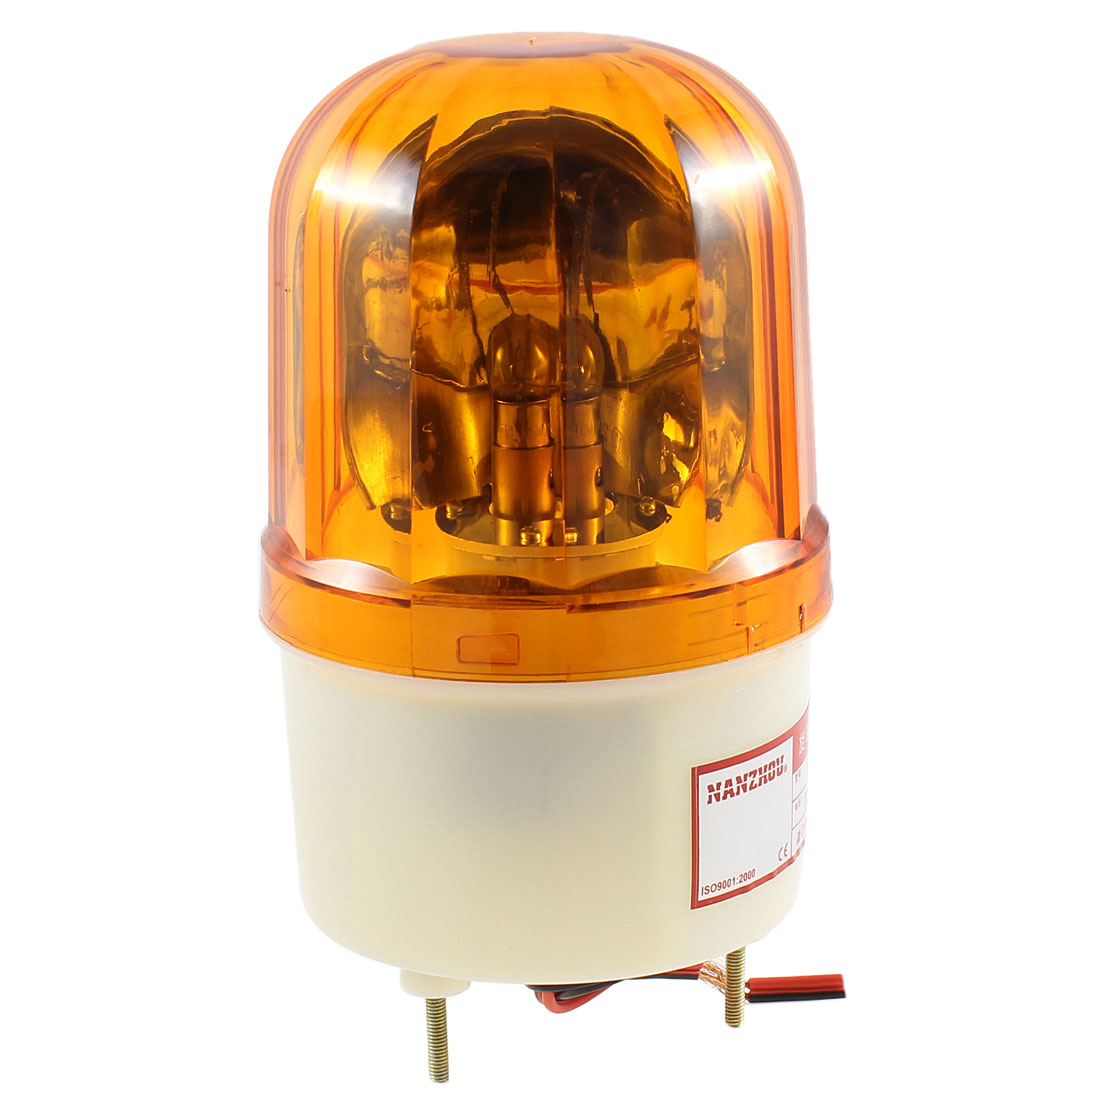 DC 24V 10W Industrial Alarm System Yellow Rotating Warning Light Lamp LTE-1101